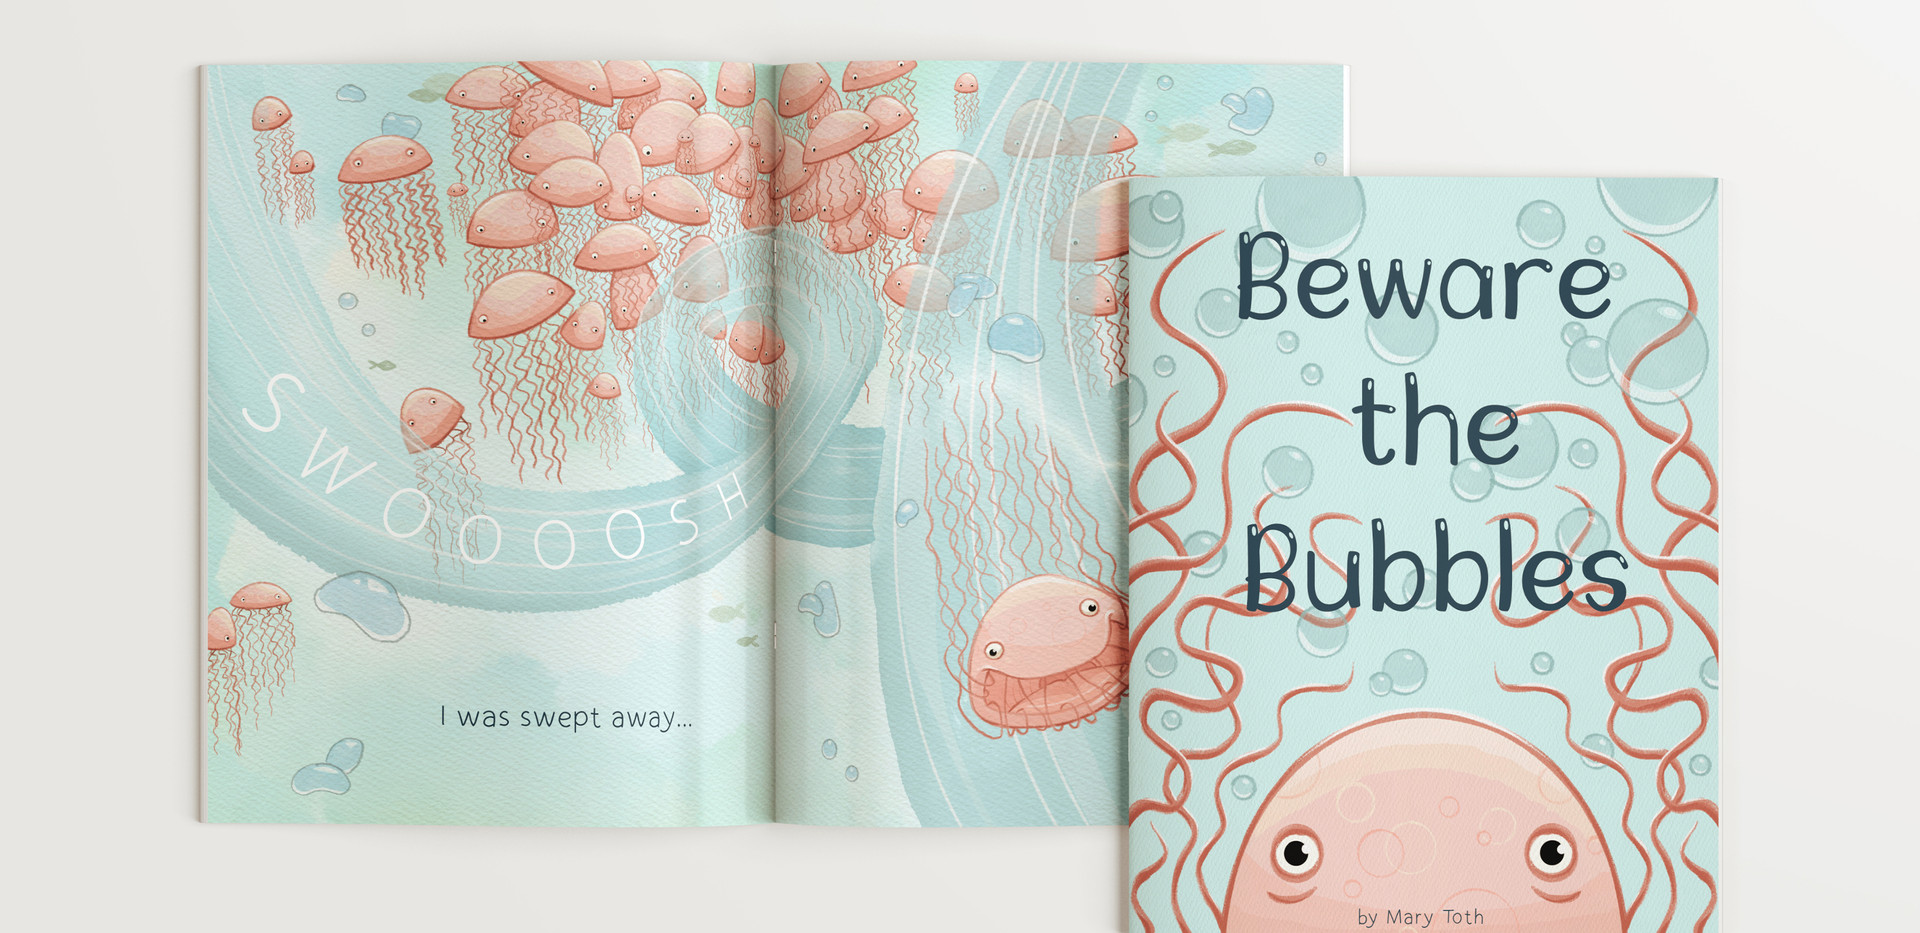 Beware the Bubbles